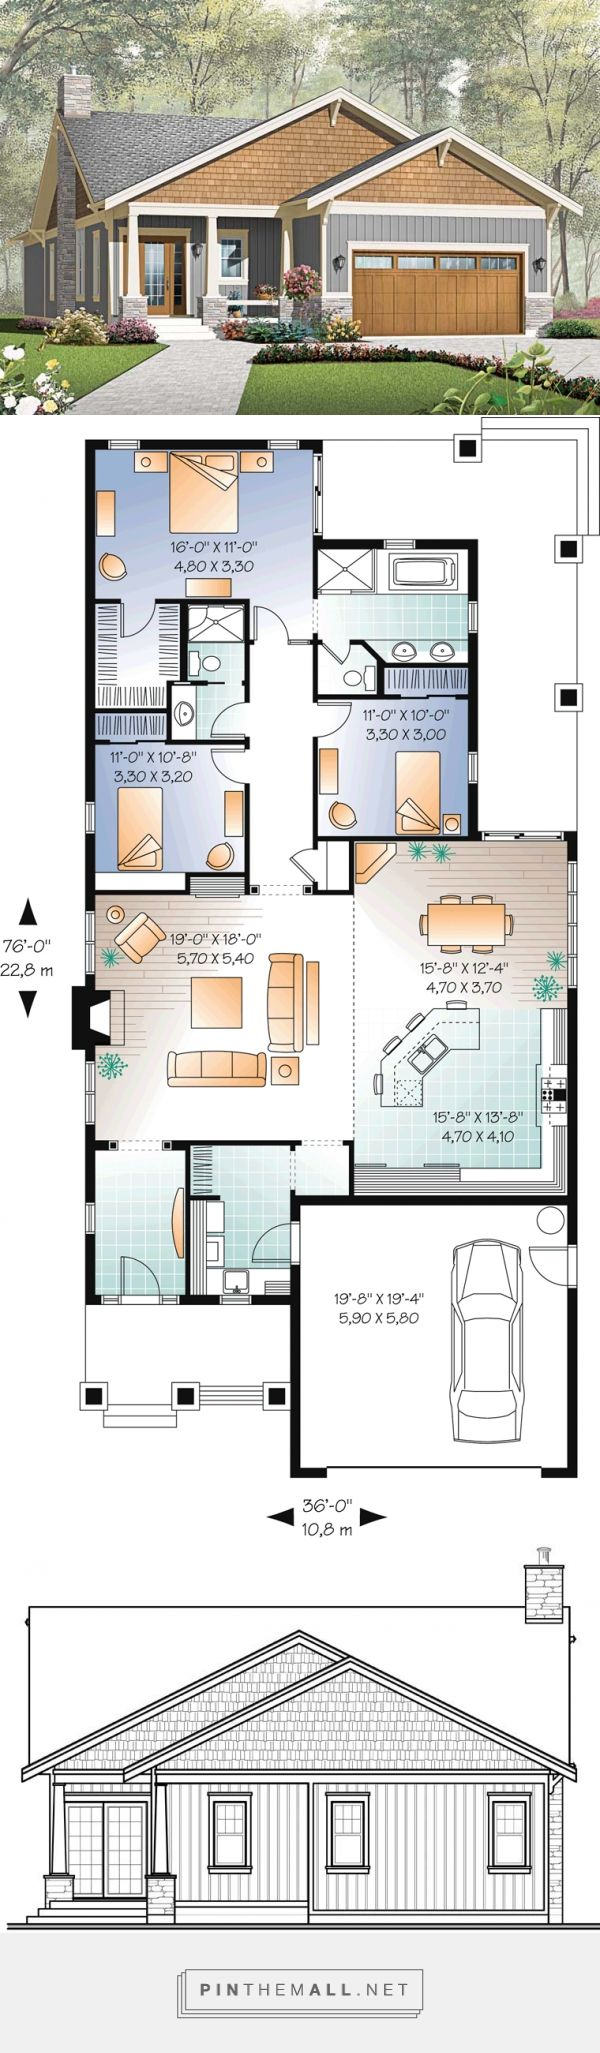 25 best house plans ideas on pinterest 4 bedroom house plans blue open plan bathrooms and country house plans - House Plan